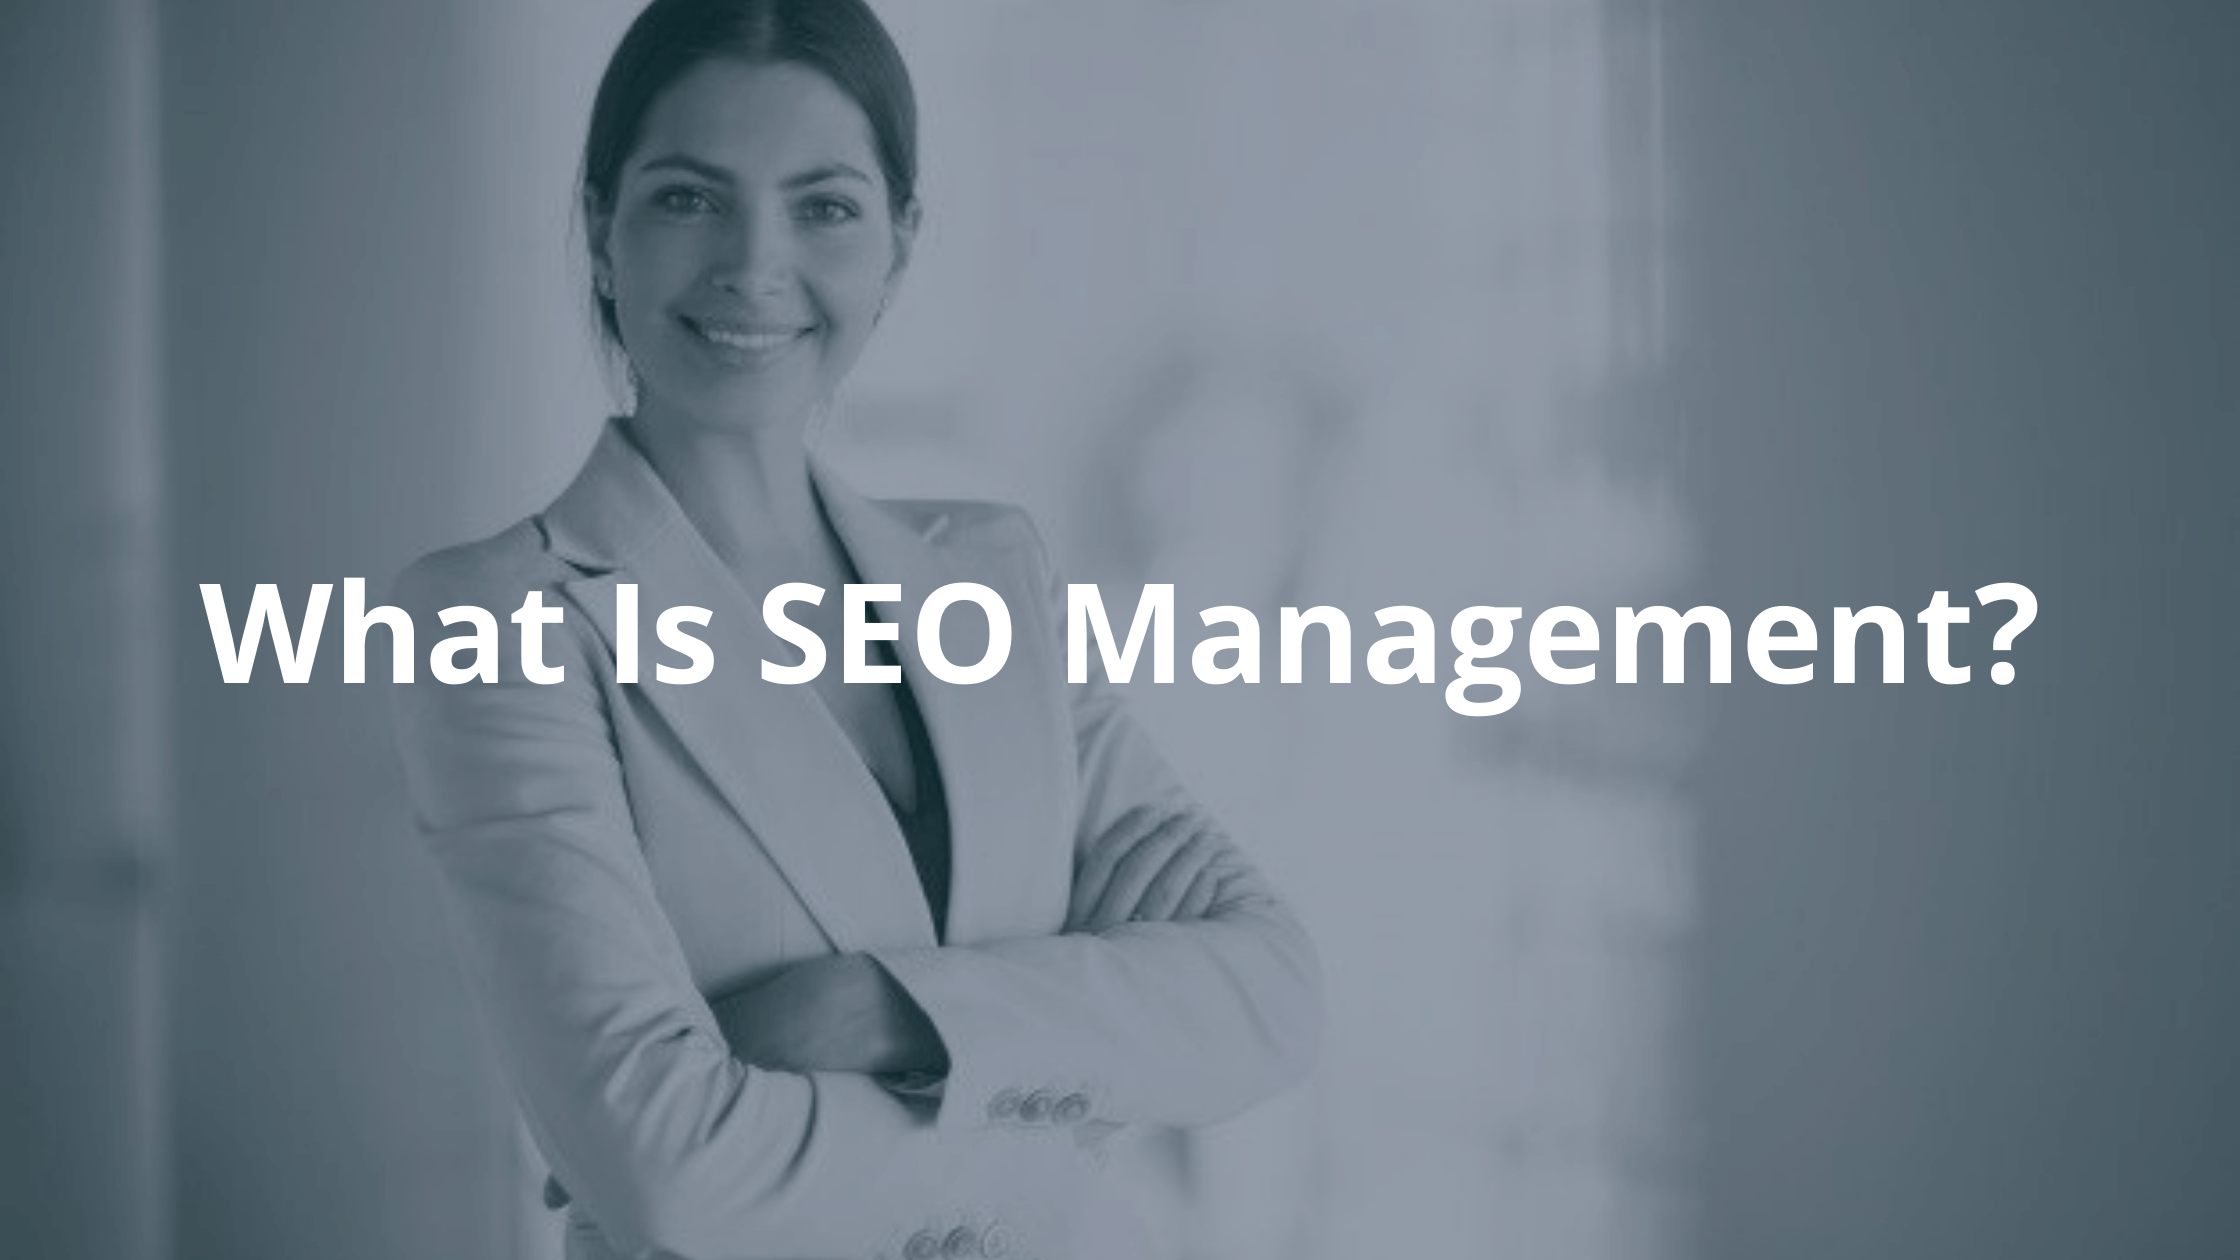 What Is SEO Management?